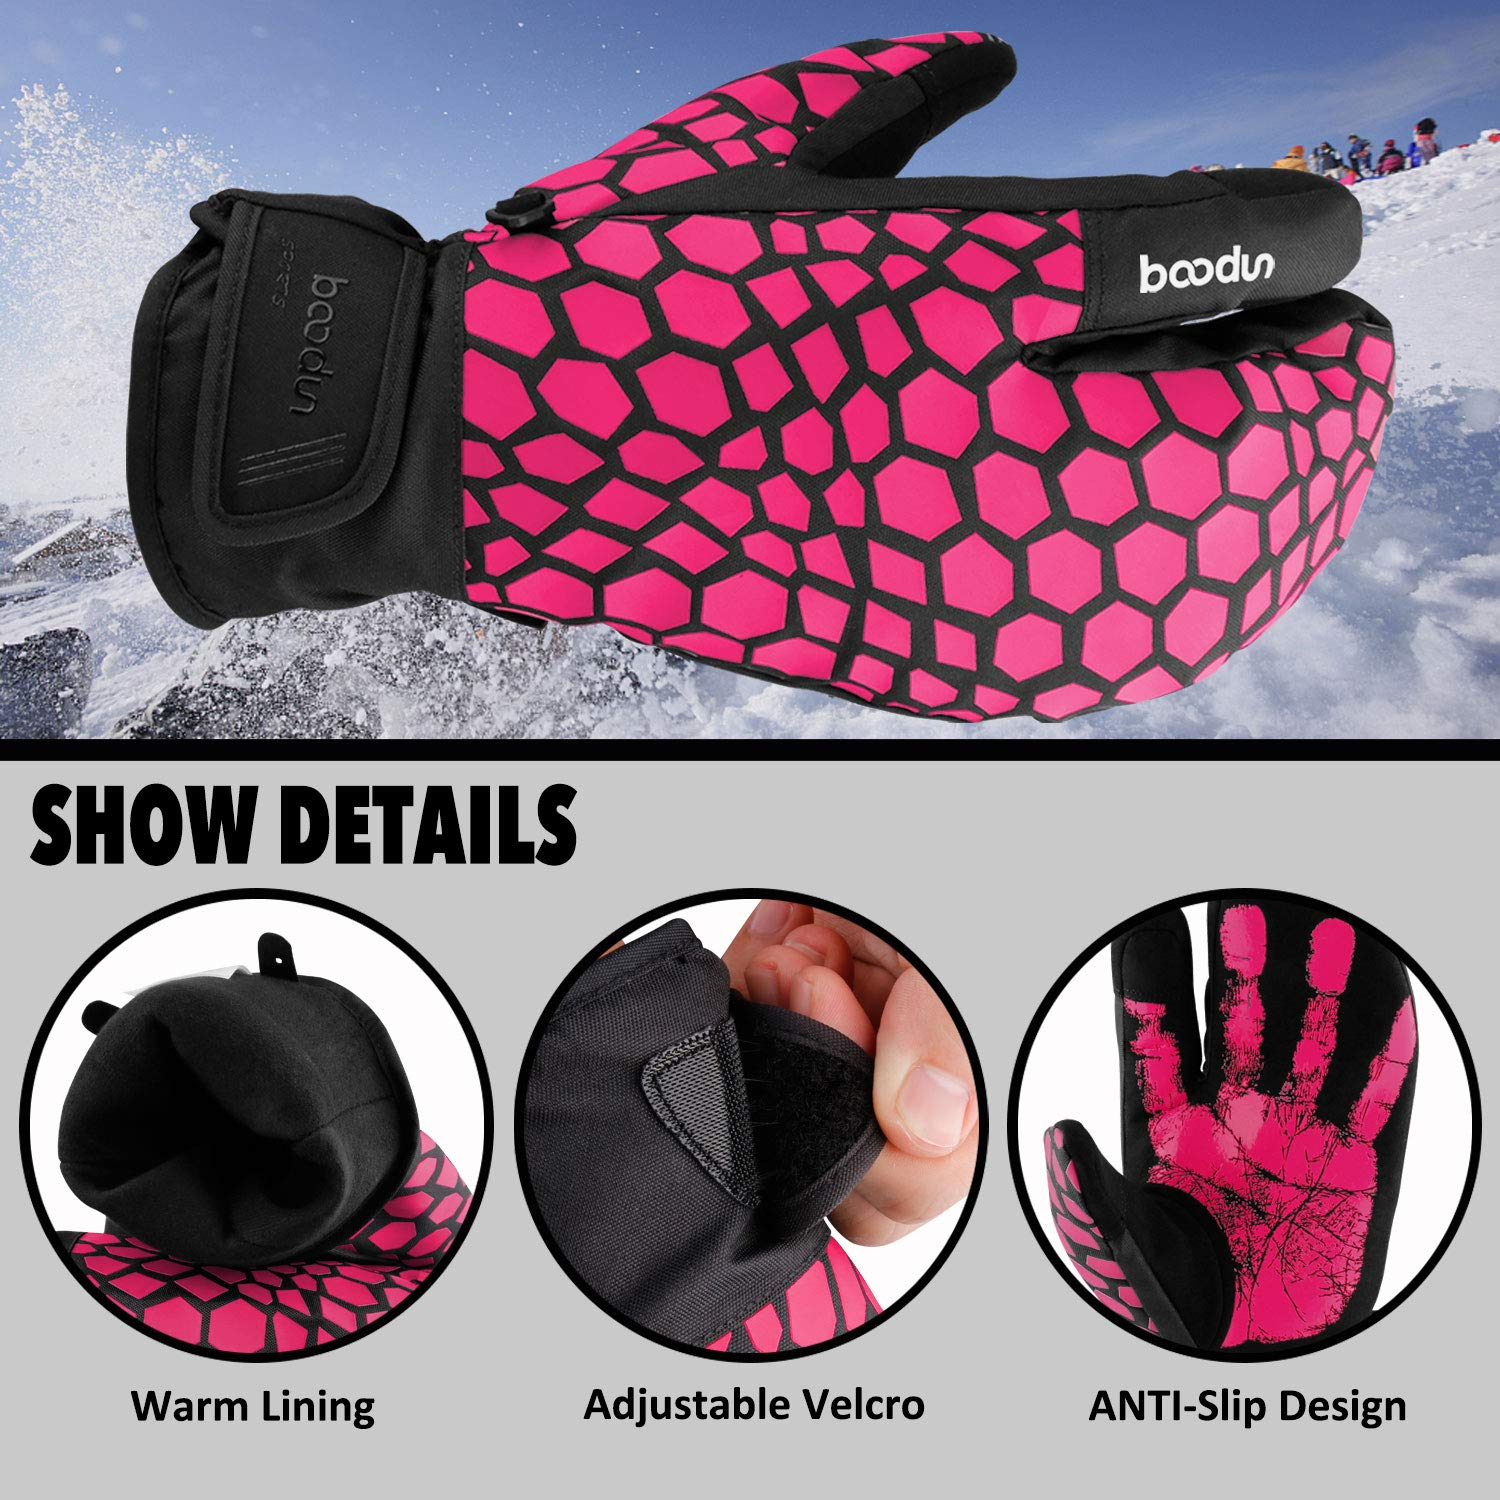 Cycling Snowboarding 3-Finger Mittens Men Women Winter Warm Gloves with Touchscreen for Cold Winter Skiing Waterproof Cold Weather Gloves Venoro Ski Gloves